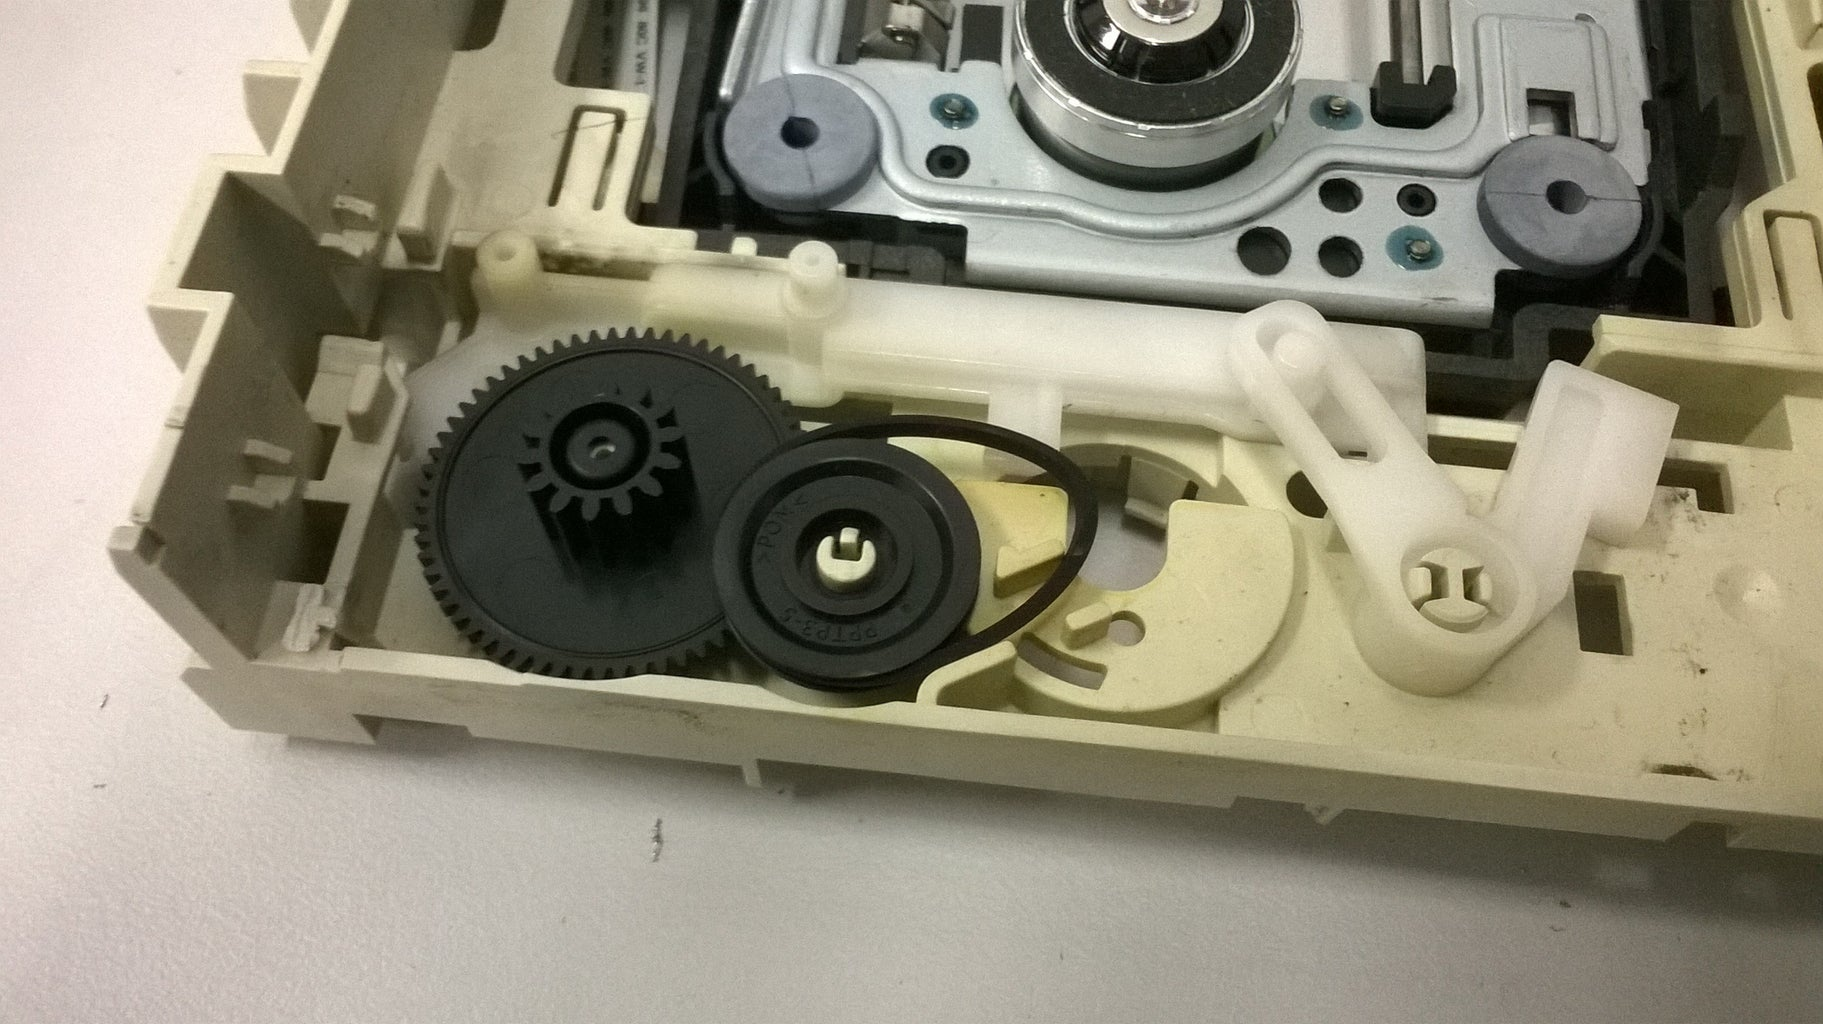 The Tray Mechanism